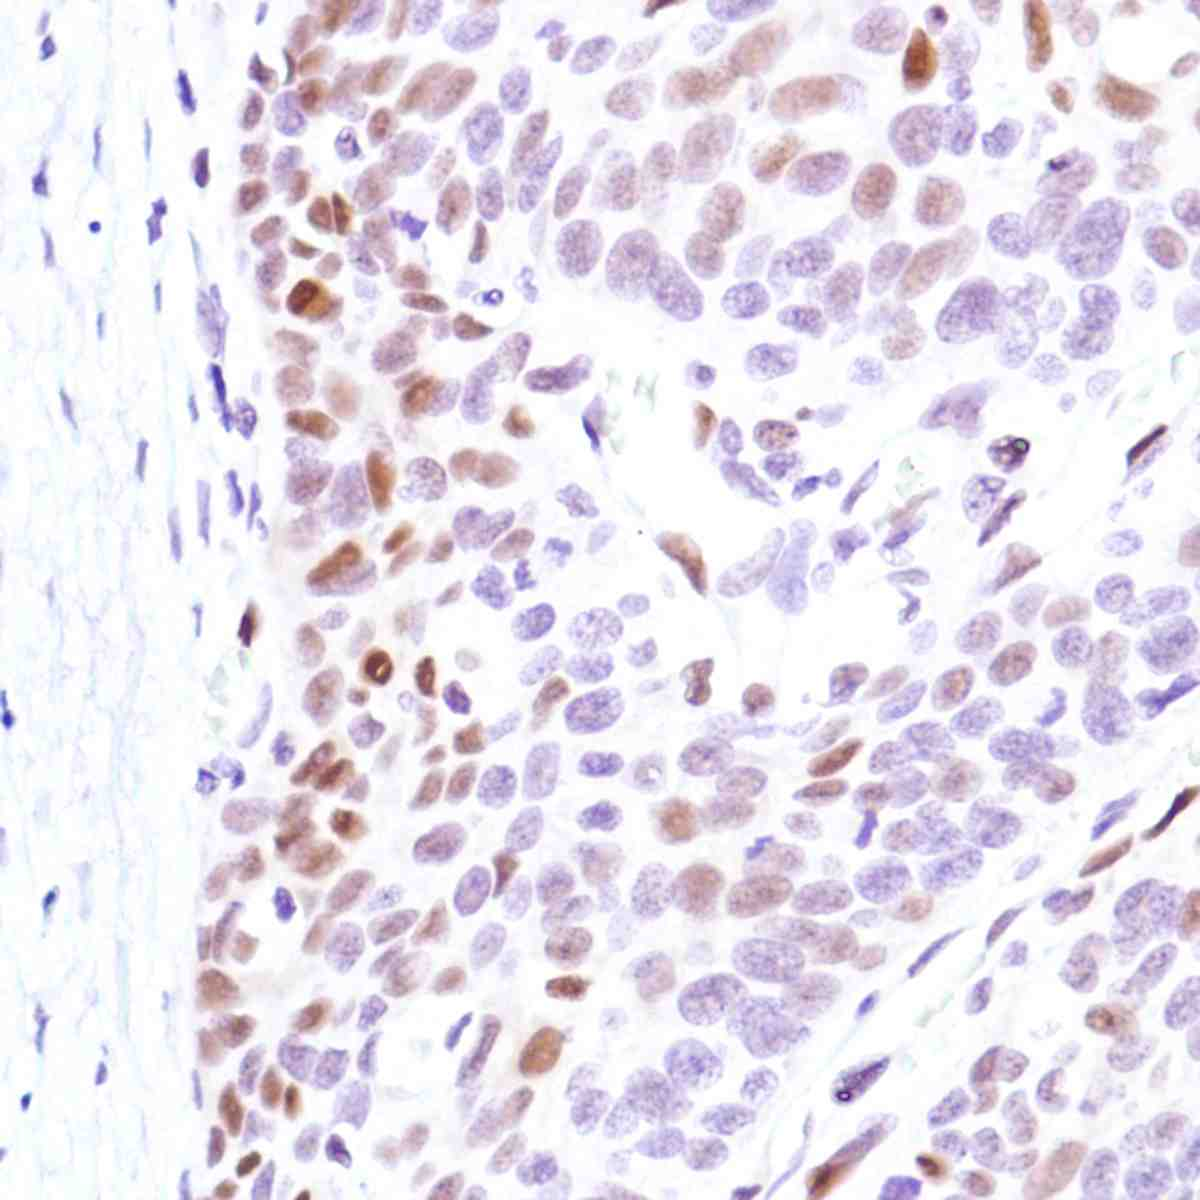 Human Cervical Squamous Cell Carcinoma stained with anti-Cyclin D3 antibody